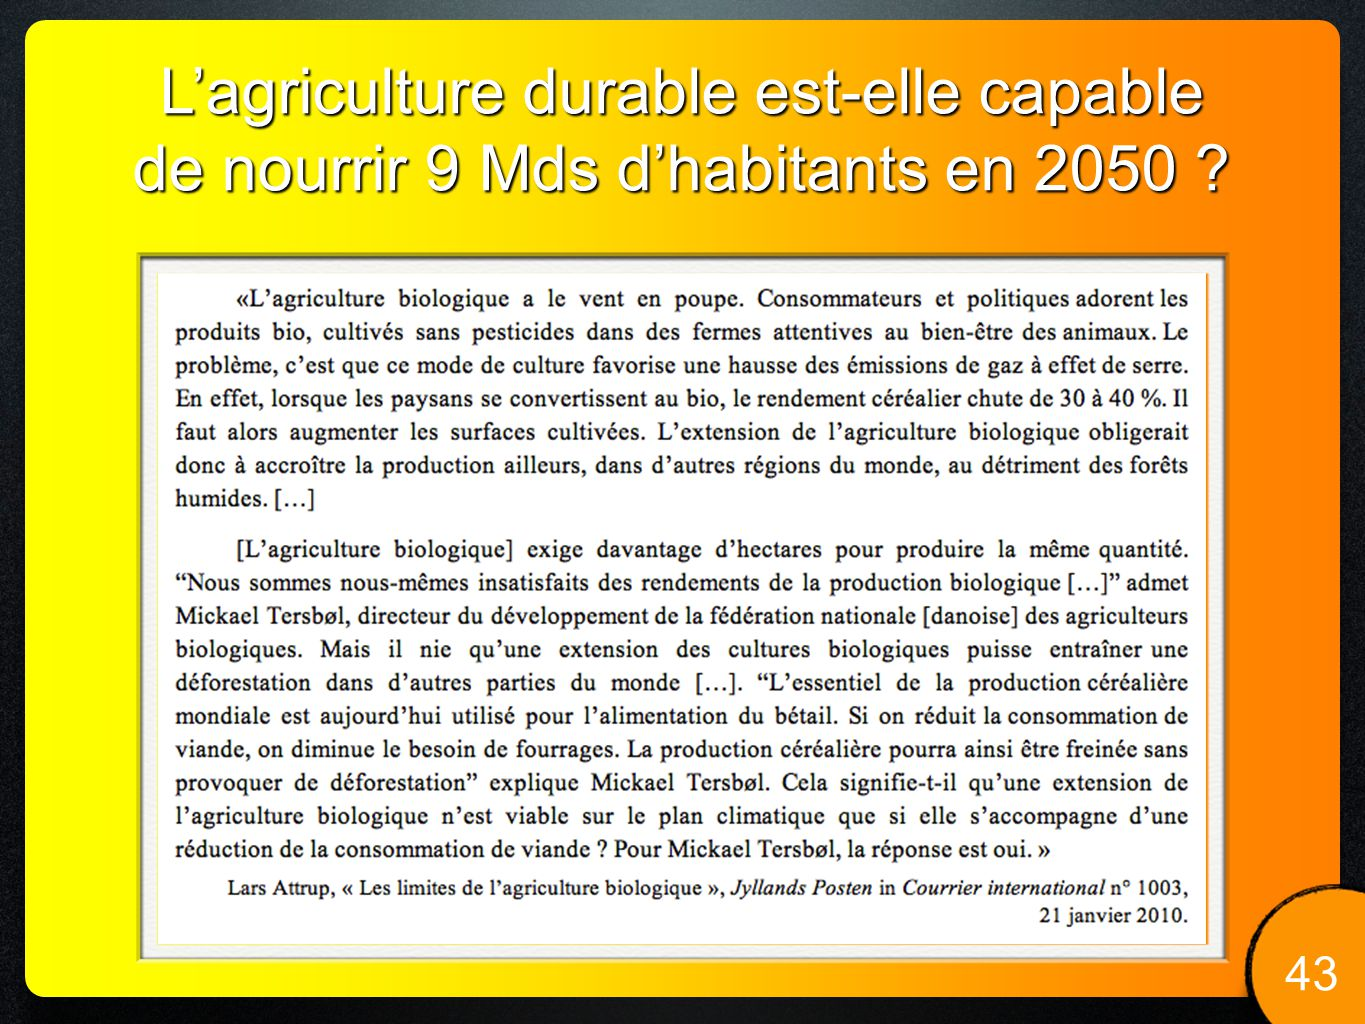 L'agriculture durable est-elle capable de nourrir 9 Mds d'habitants en 2050